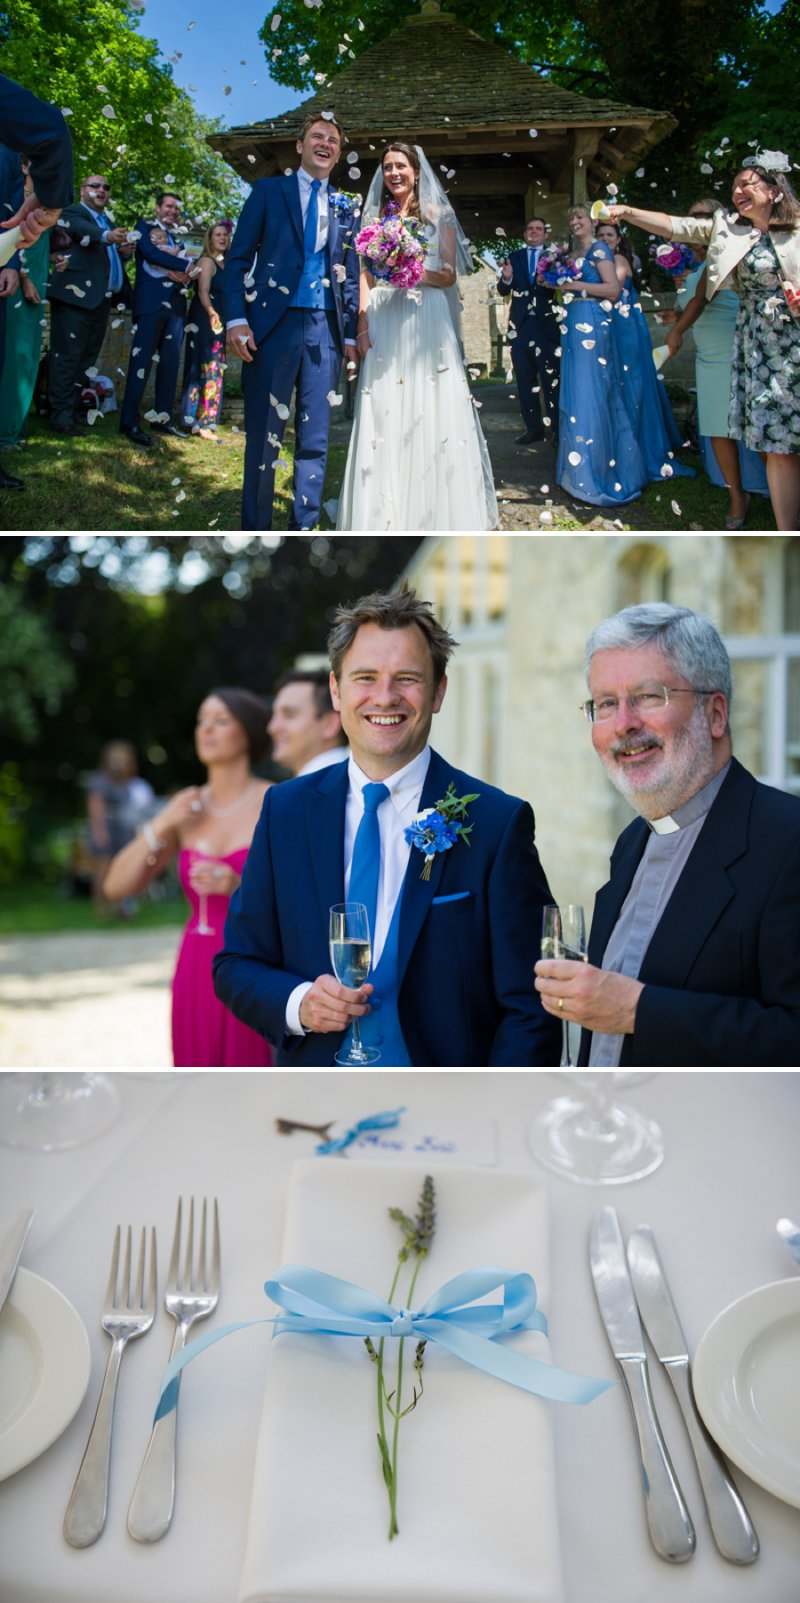 Traditional White Wedding At The Rectory In Wiltshire With Bride In Bespoke Gown And Vibrant Blue Hydrangeas And Hot Pink Peonies In Wedding Flowers 4